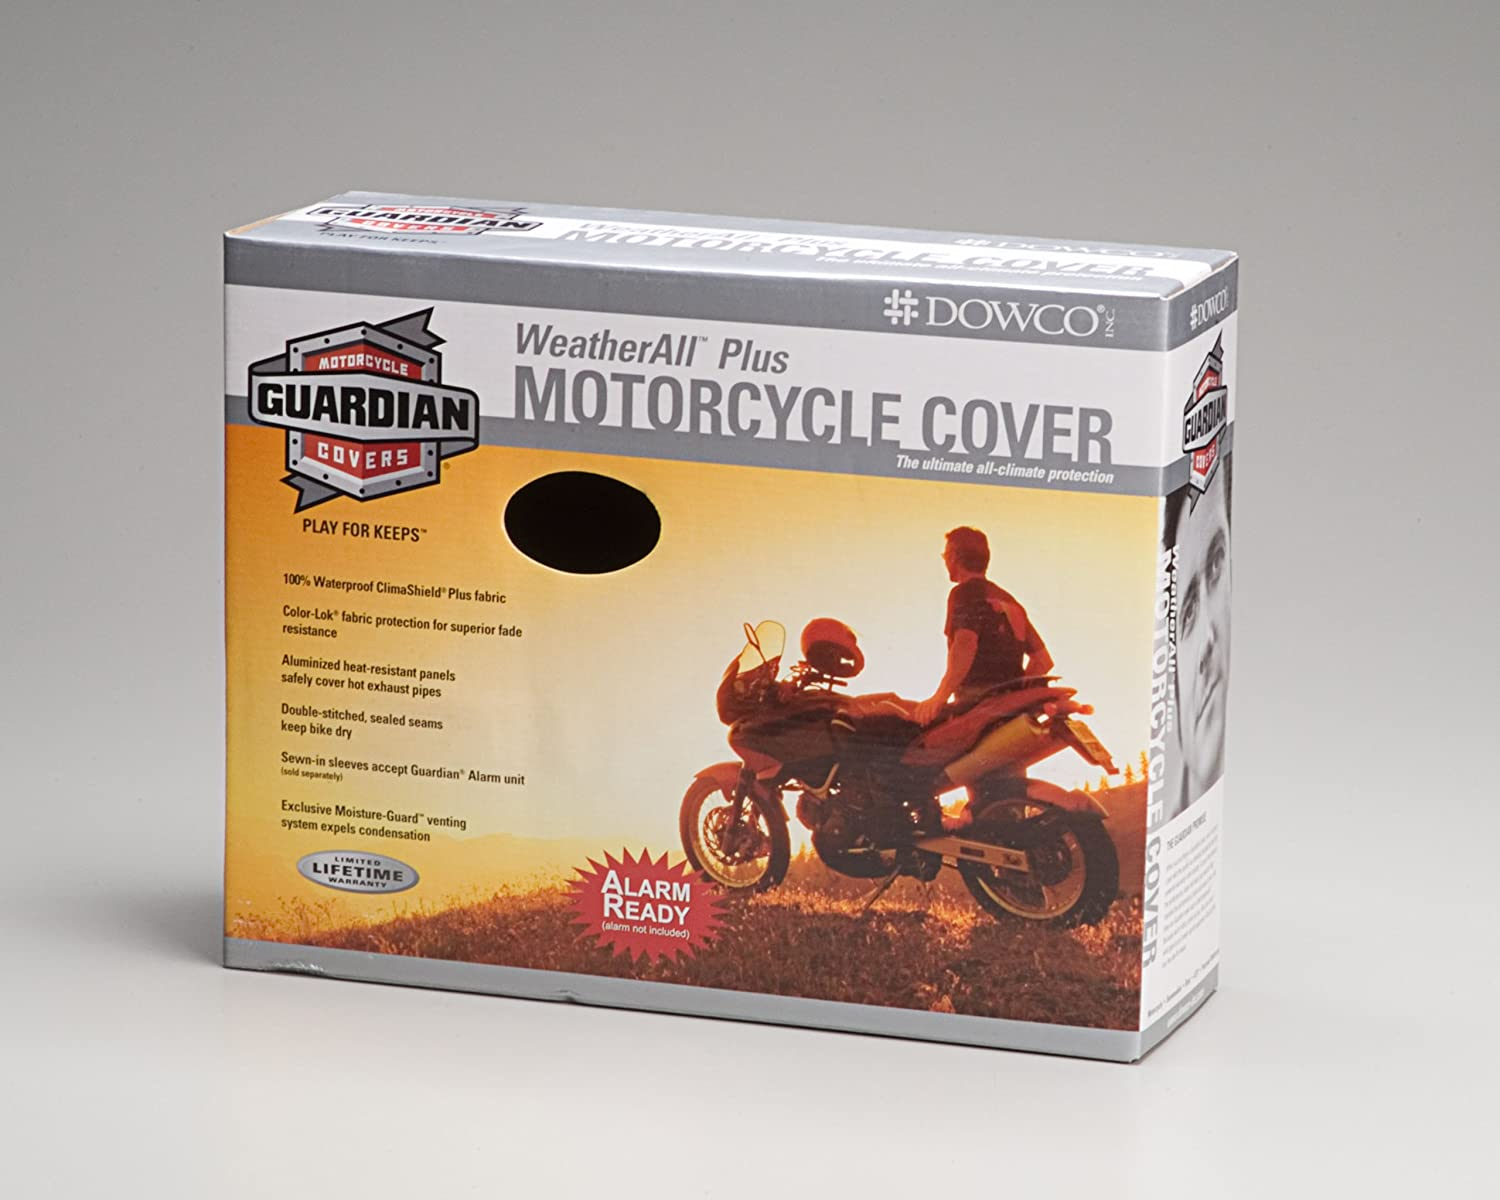 Waterproof Dowco Guardian WeatherAll Plus Indoor//Outdoor Motorcycle Cover Reflective UV Protection XXXL 50006-02 Heat Safe Moisture Guard Vent Lifetime Limited Warranty Black